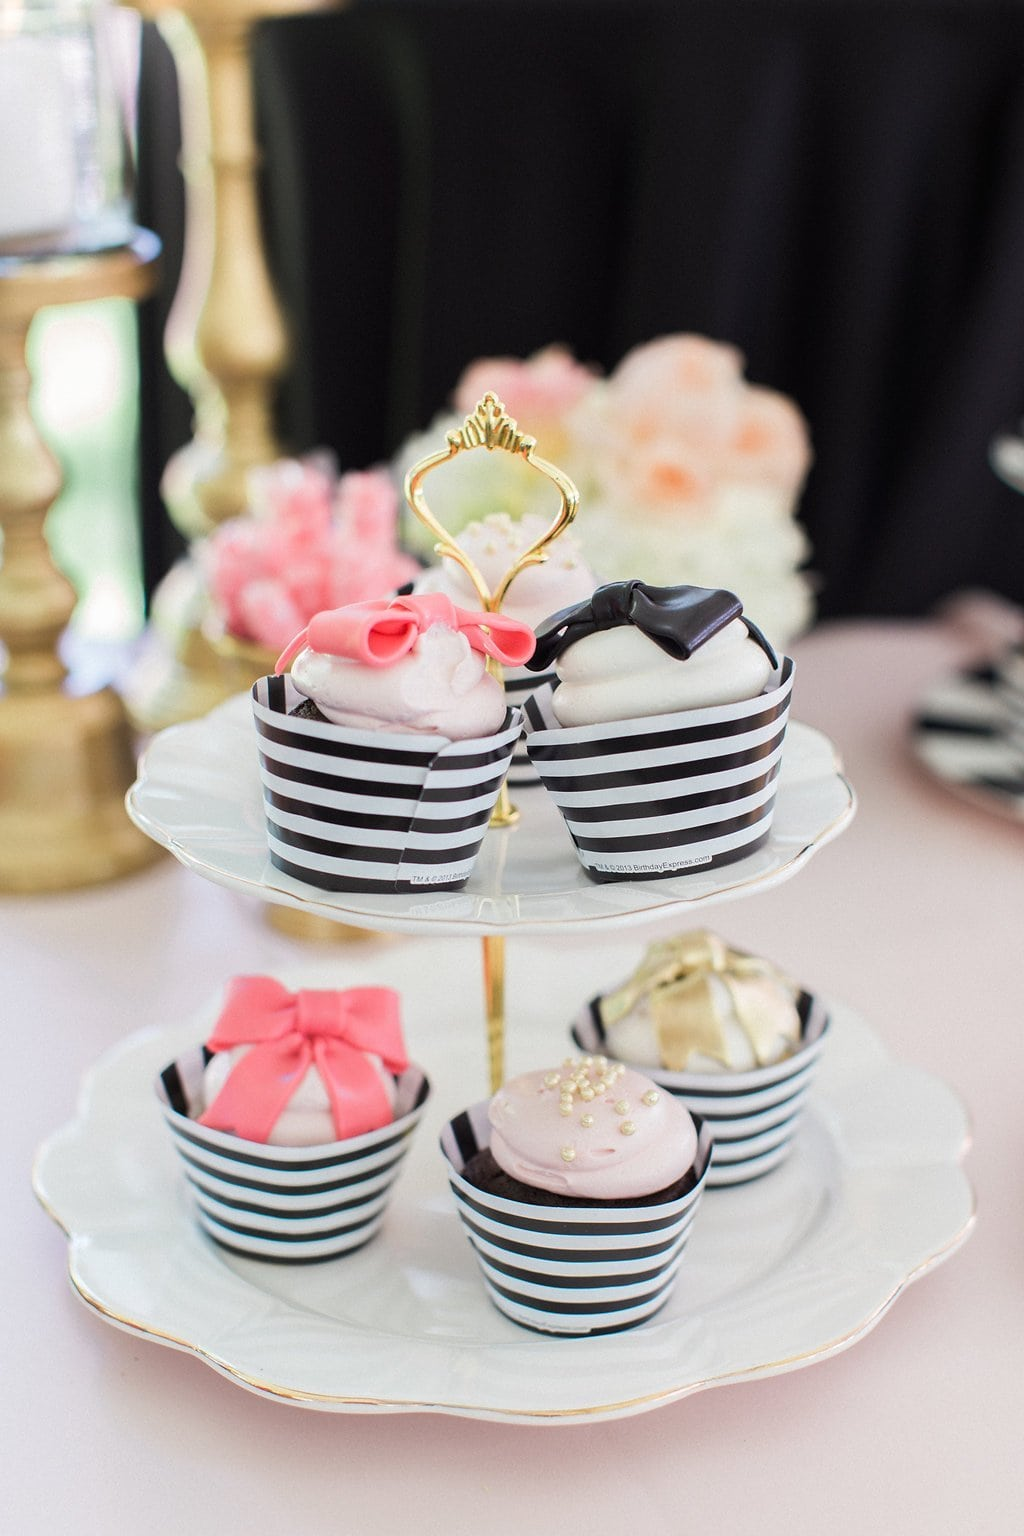 black and white cupcakes with pink bows - Black & White Kate Spade Inspired Bridal Shower